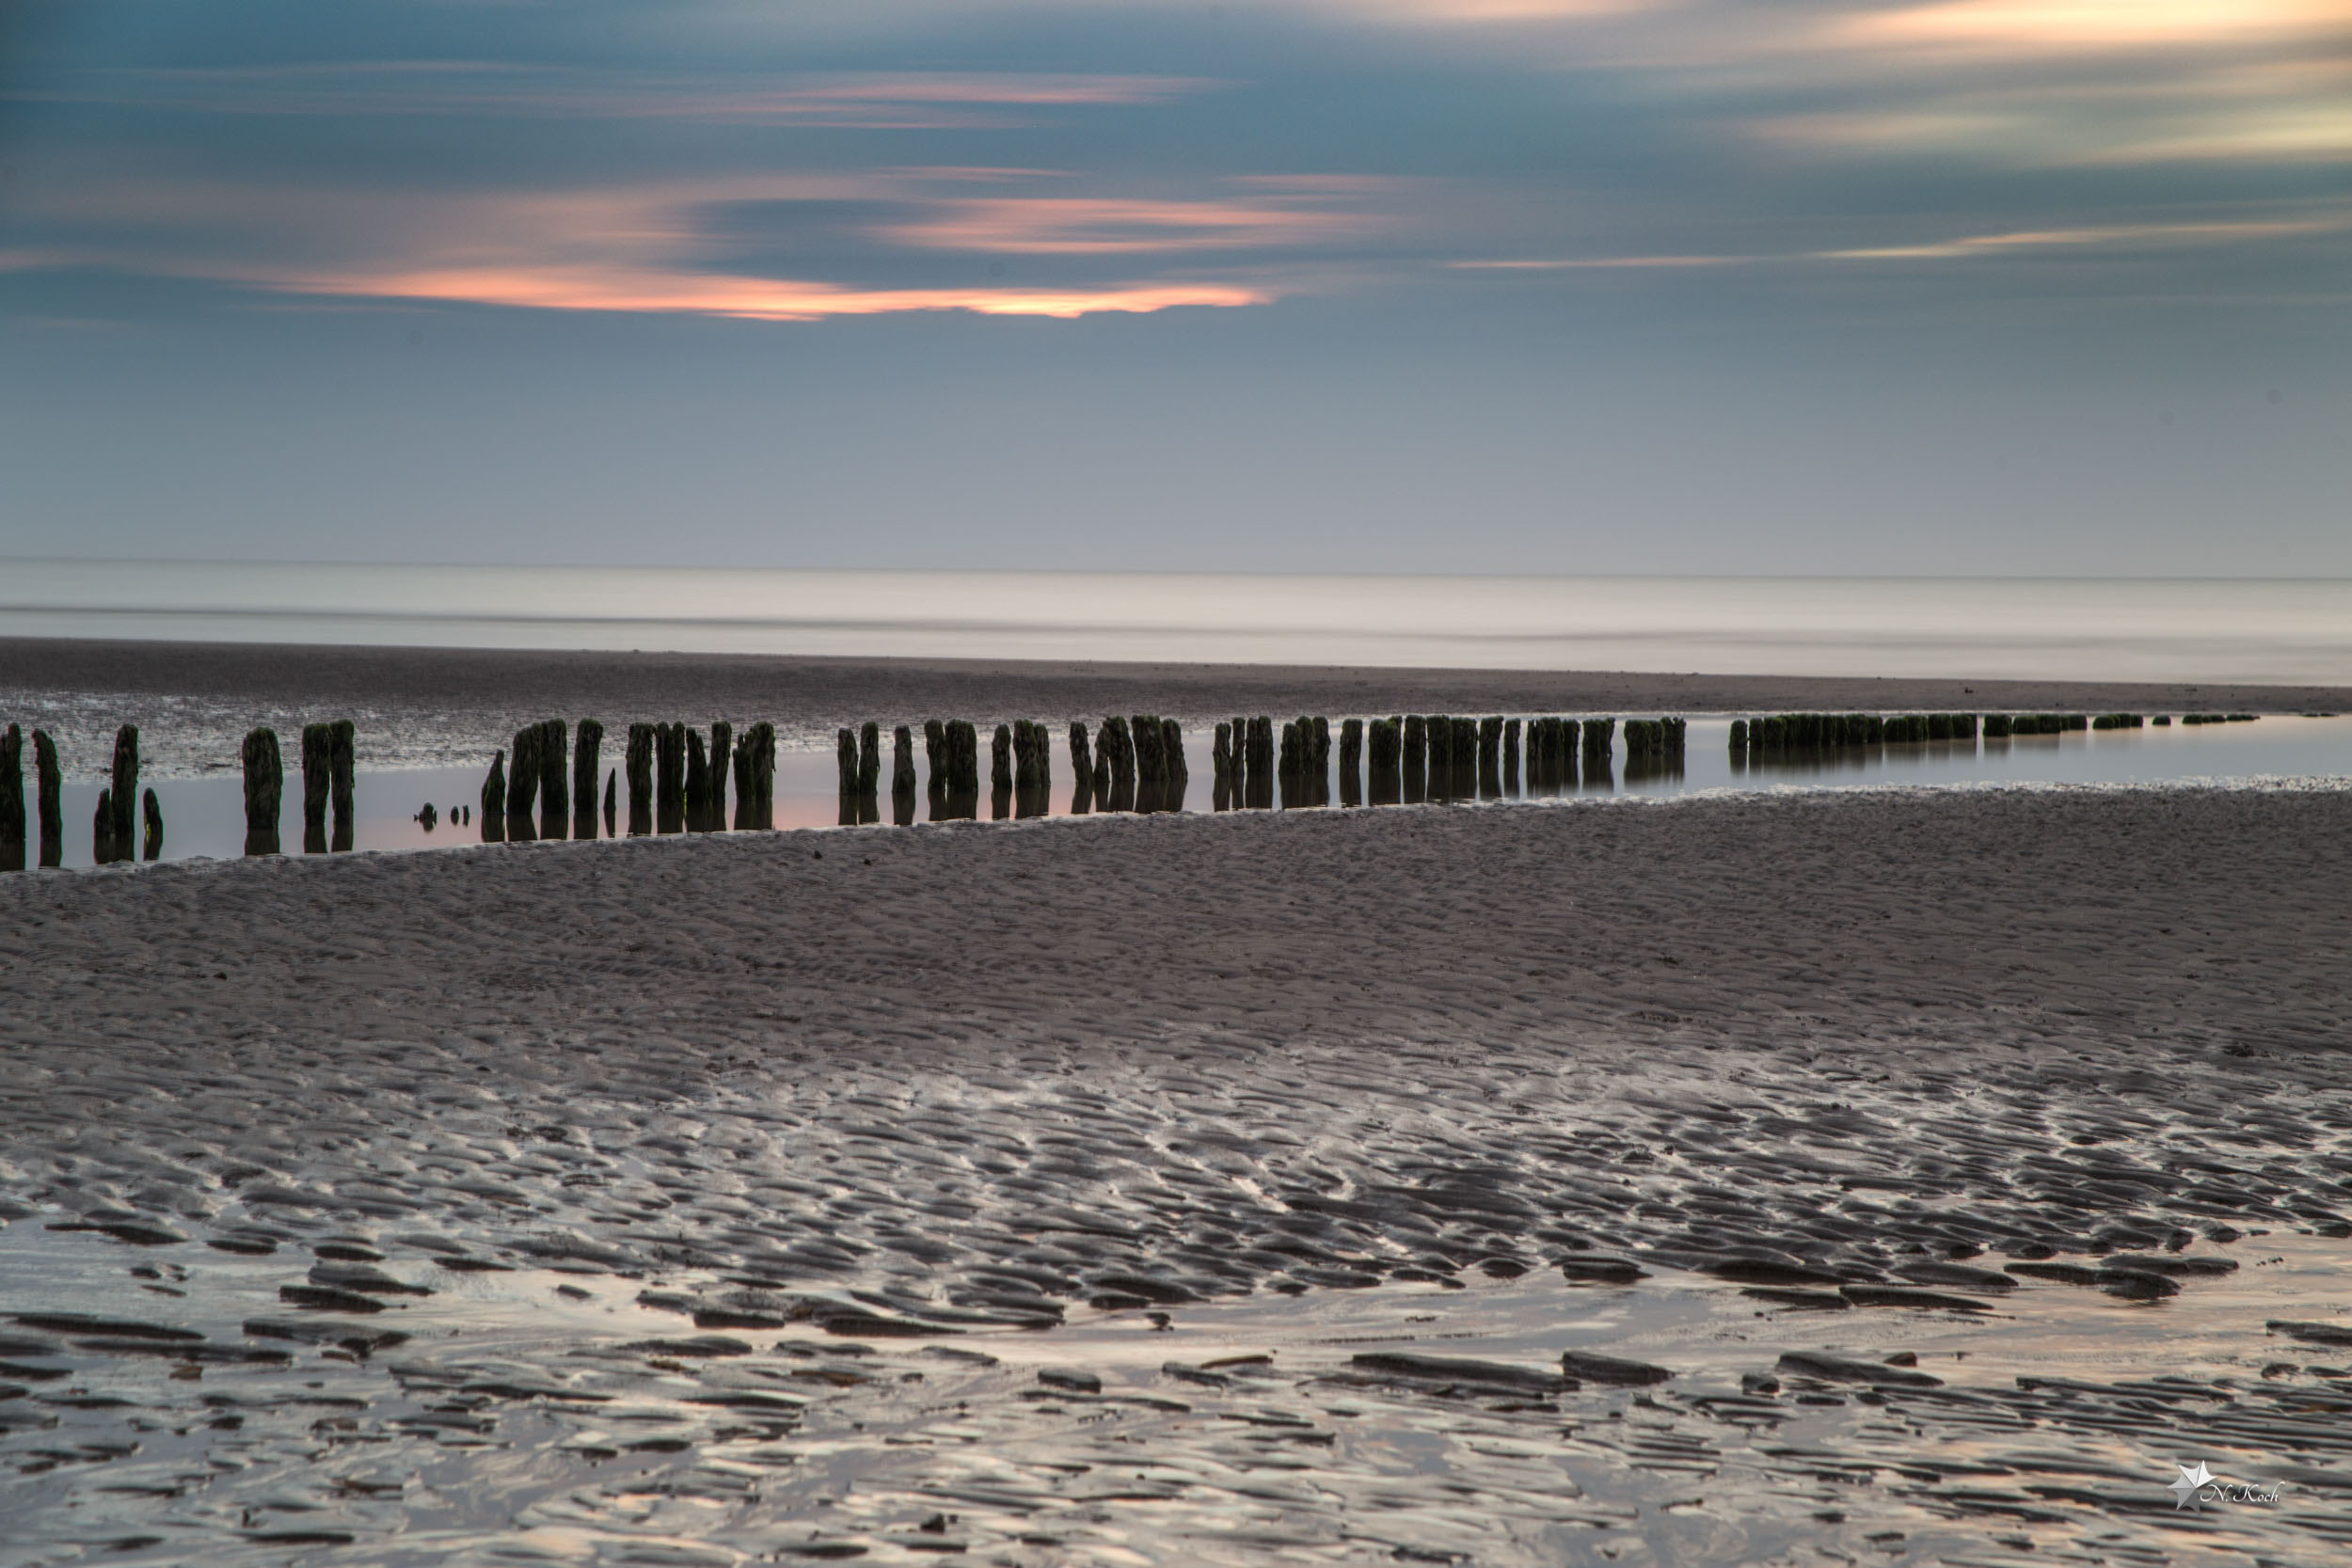 2015, Norderney | Long exposure at the beach